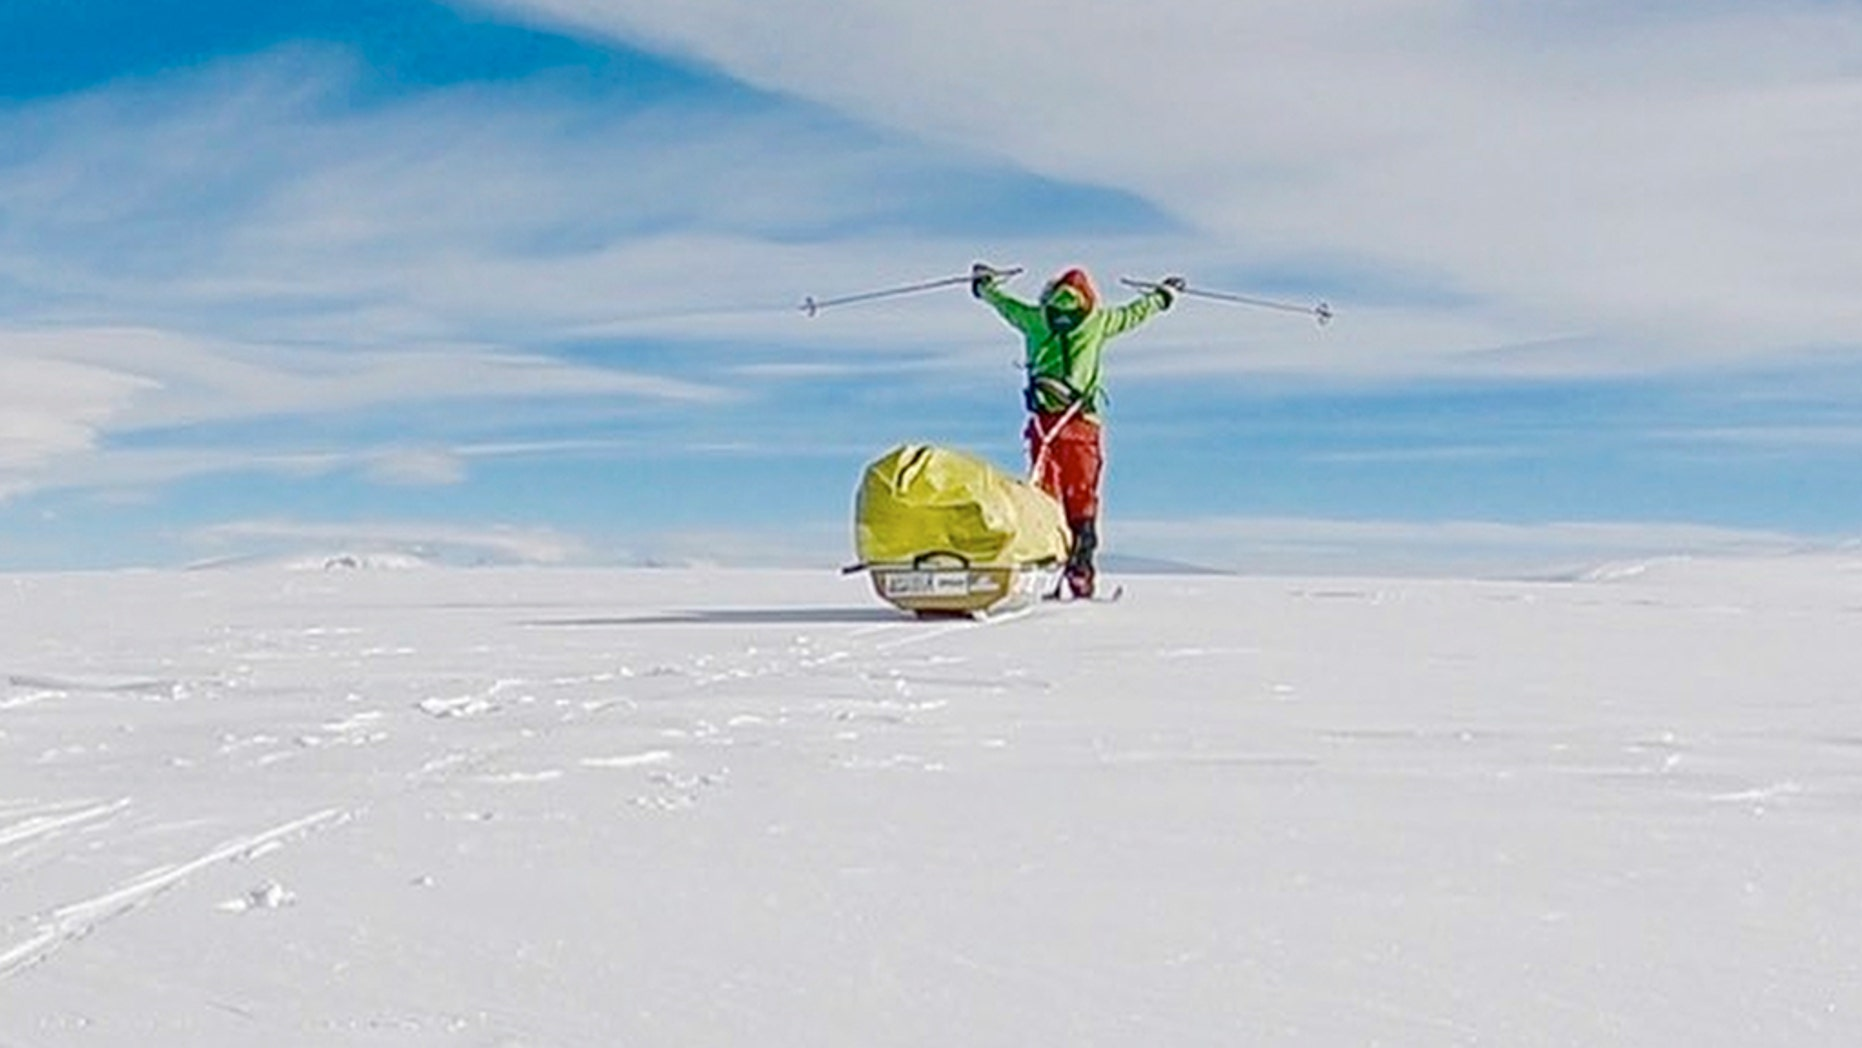 Colin O'Brady, of Portland., Ore., has become the first person to traverse Antarctica alone without any assistance. O'Brady finished the 932-mile journey Wednesday across the polar continent in 54 days, lugging his supplies on a sled as he skied in bone-chilling temperatures. (Colin O'Brady via AP)